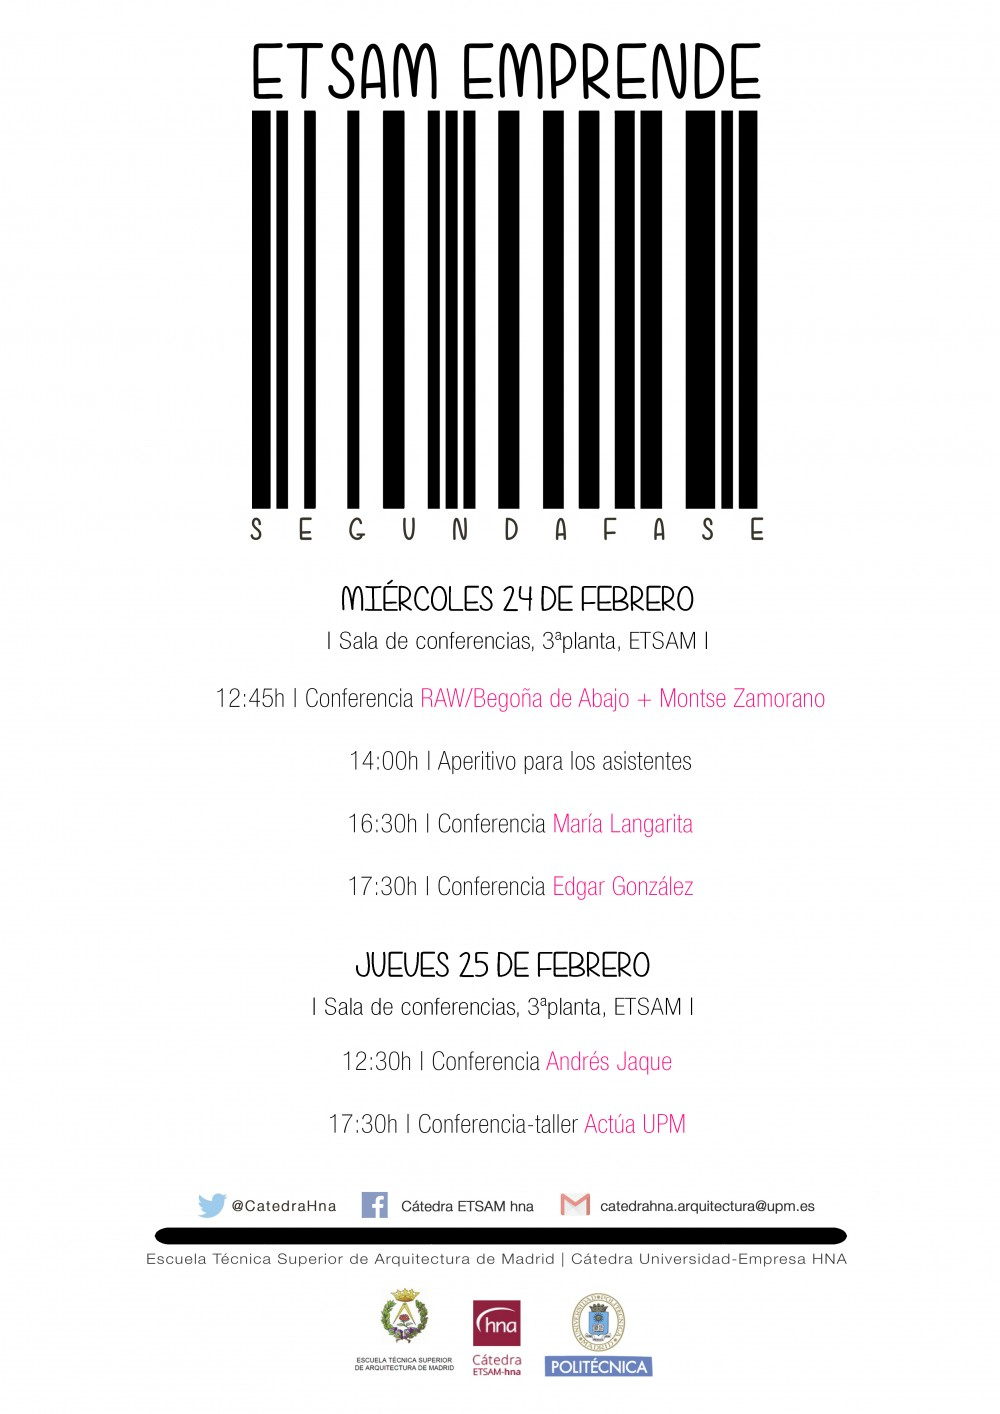 2016 0209_CONFERENCIAS etsam emprende